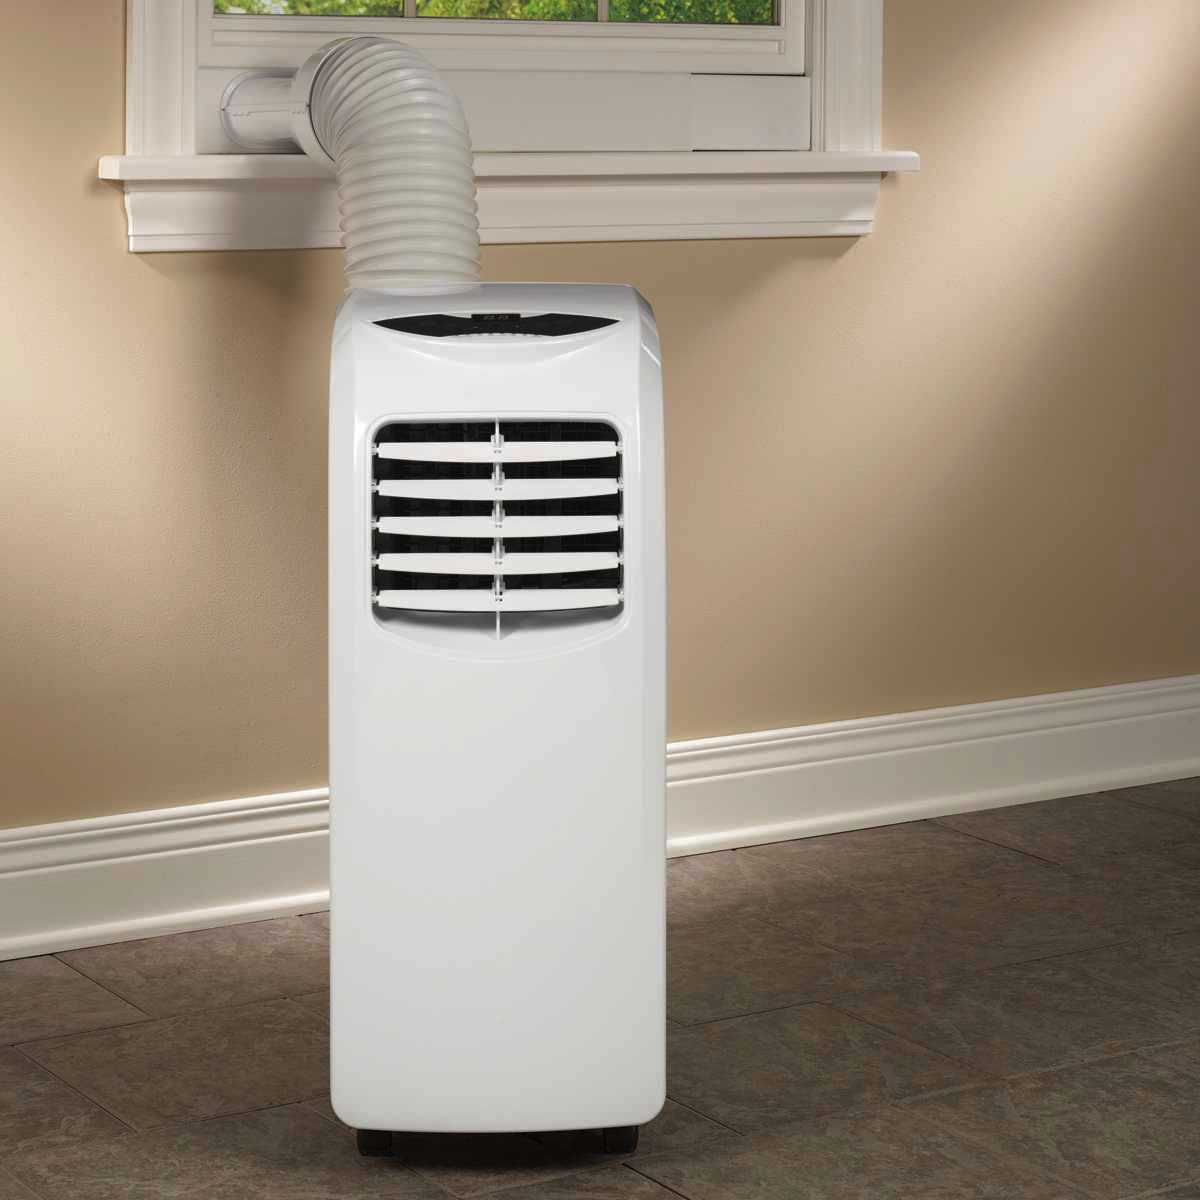 A Small Air Conditioner For Room Under The Window